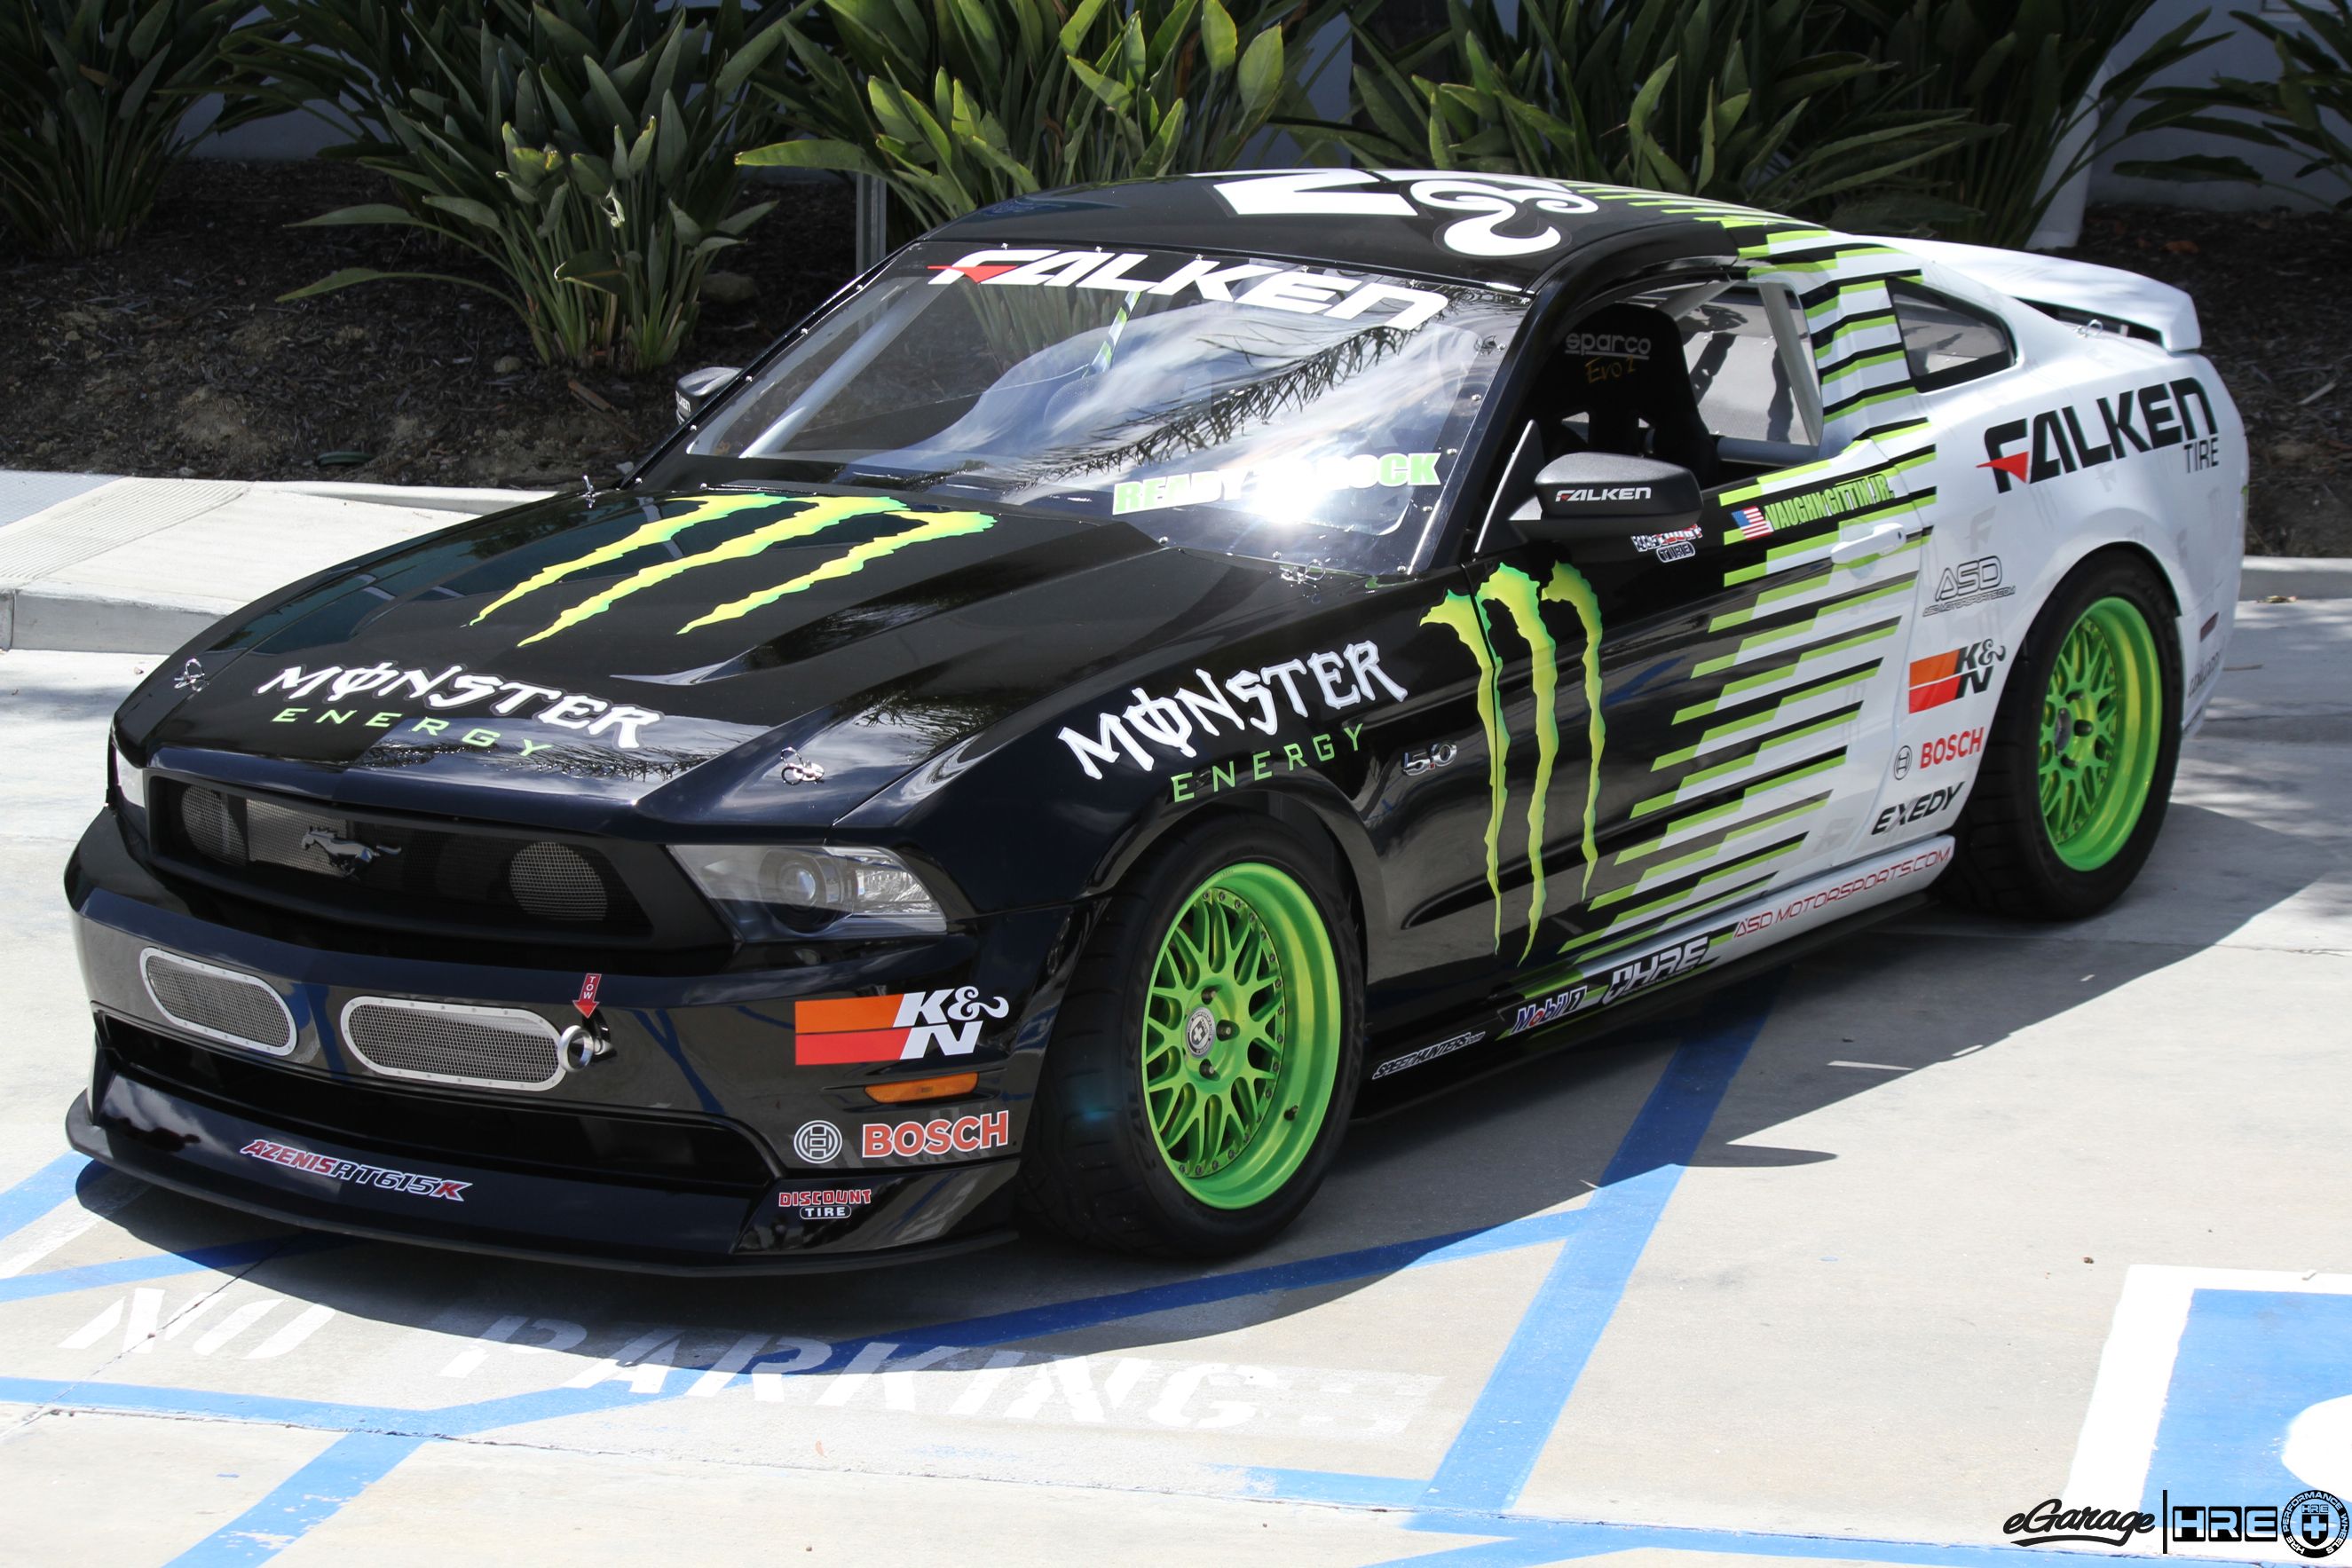 monster energy cars